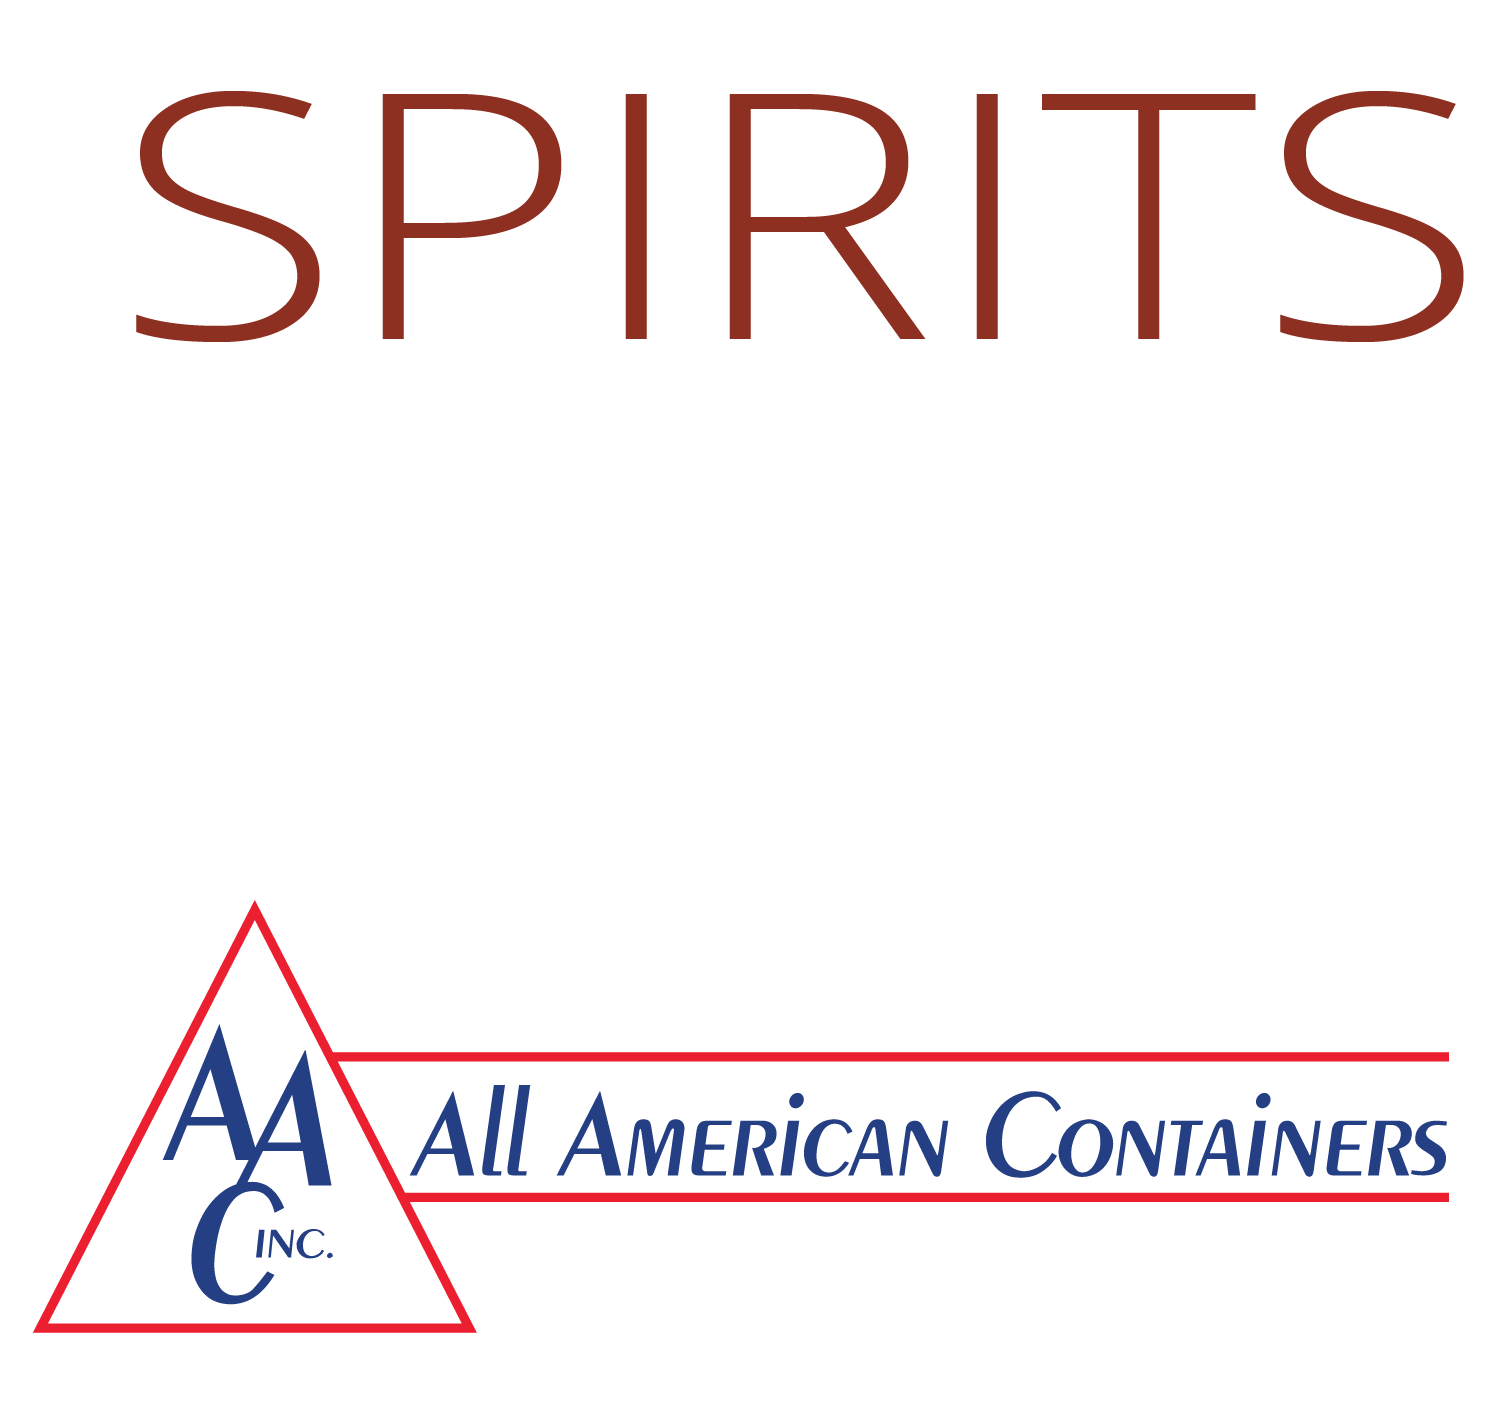 All American Containers Spirits